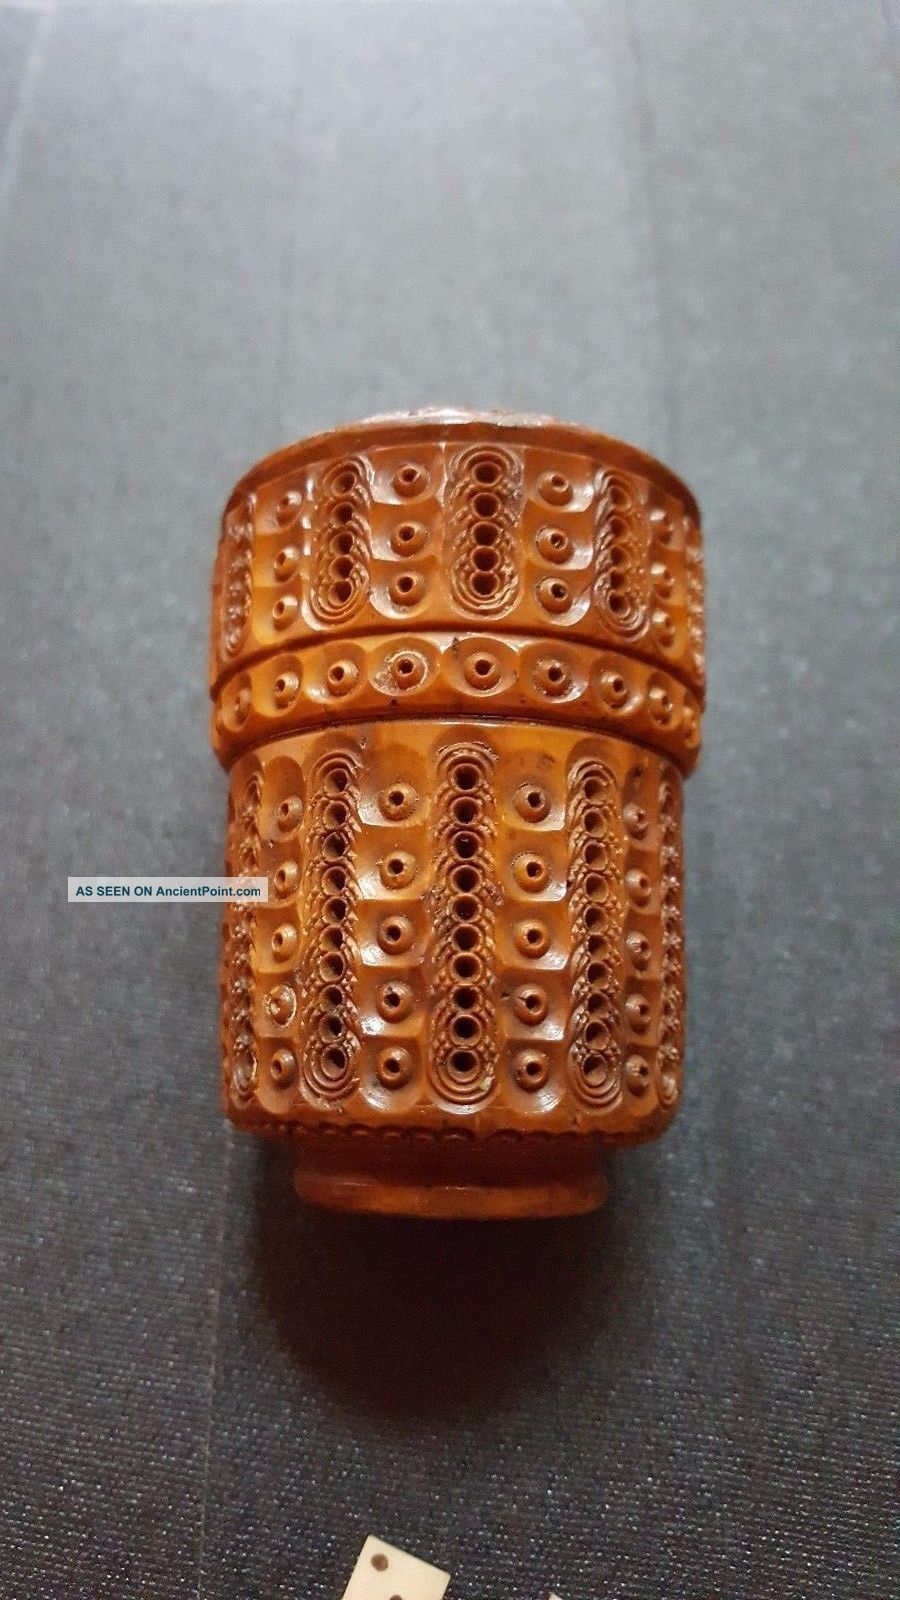 Antique Victorian Coquilla Nut Cylinder Hand Carved Sewing/ Needle Case Needles & Cases photo